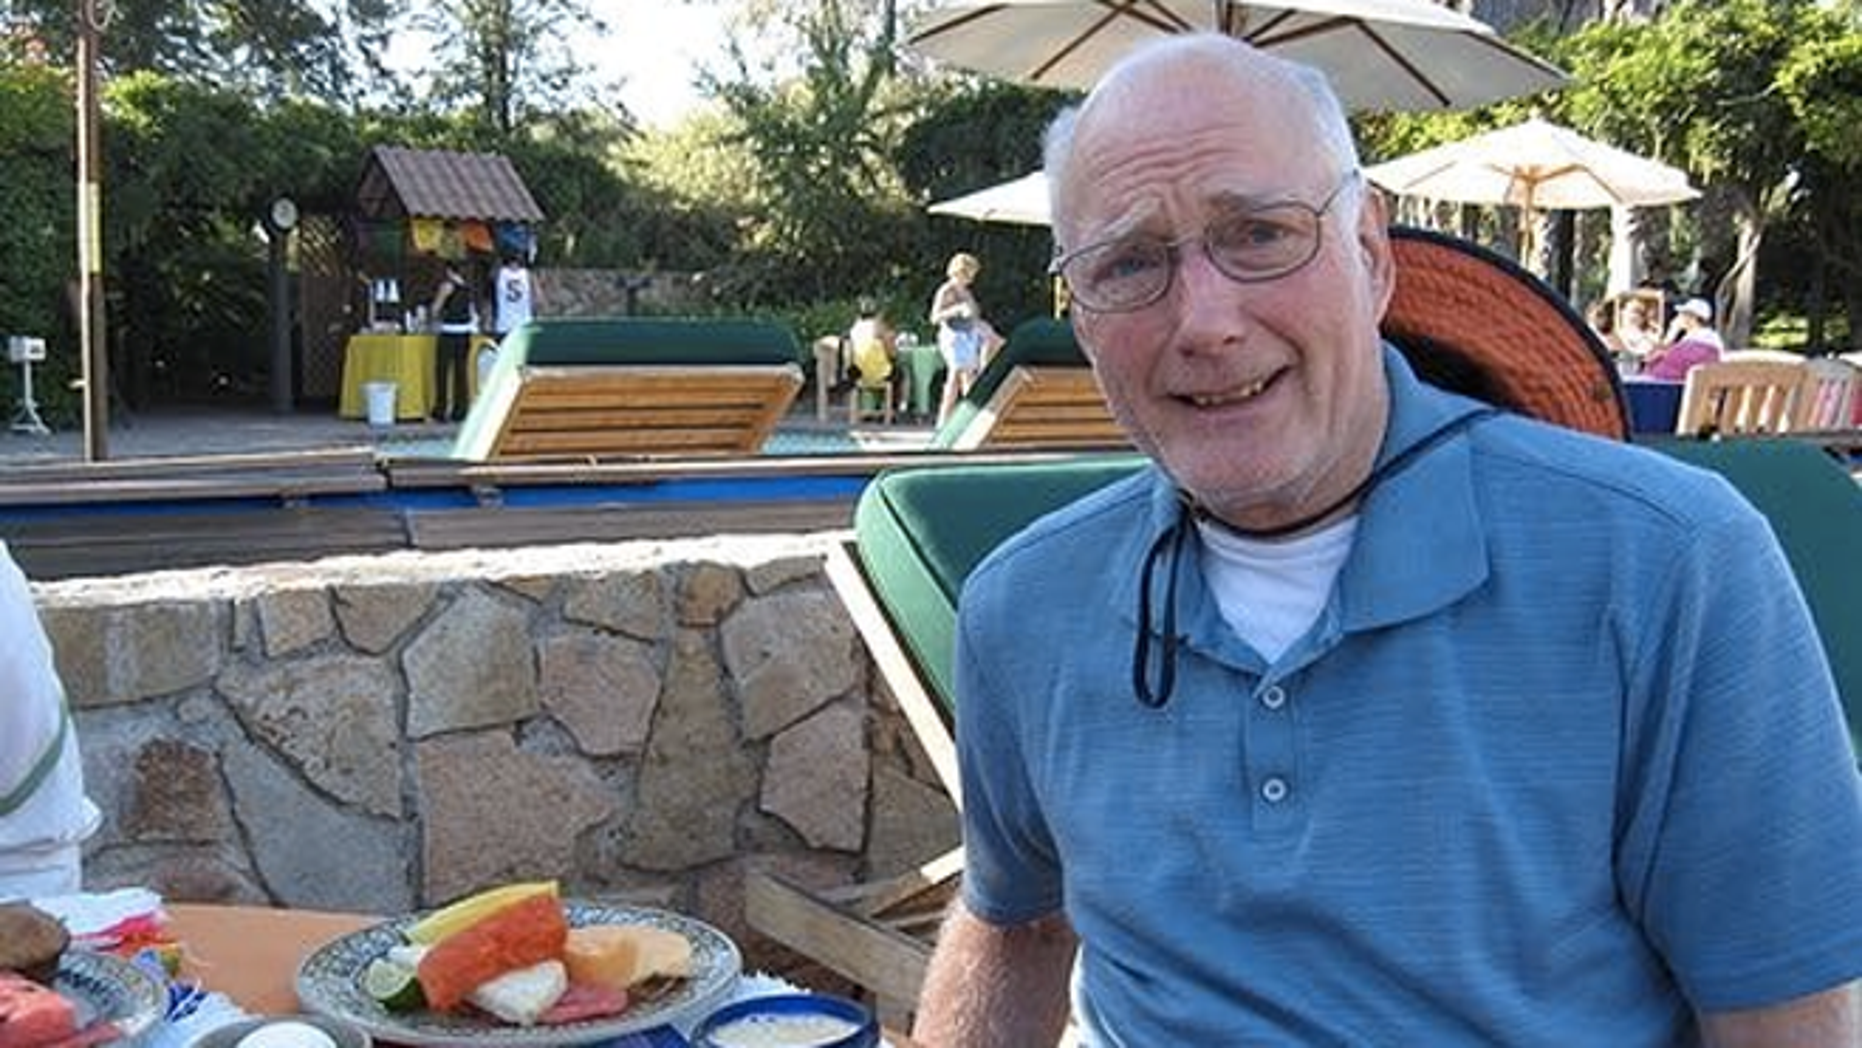 John Nelson Beck, 73, was last seen Tuesday mornig in Oakland. (Alameda Police)